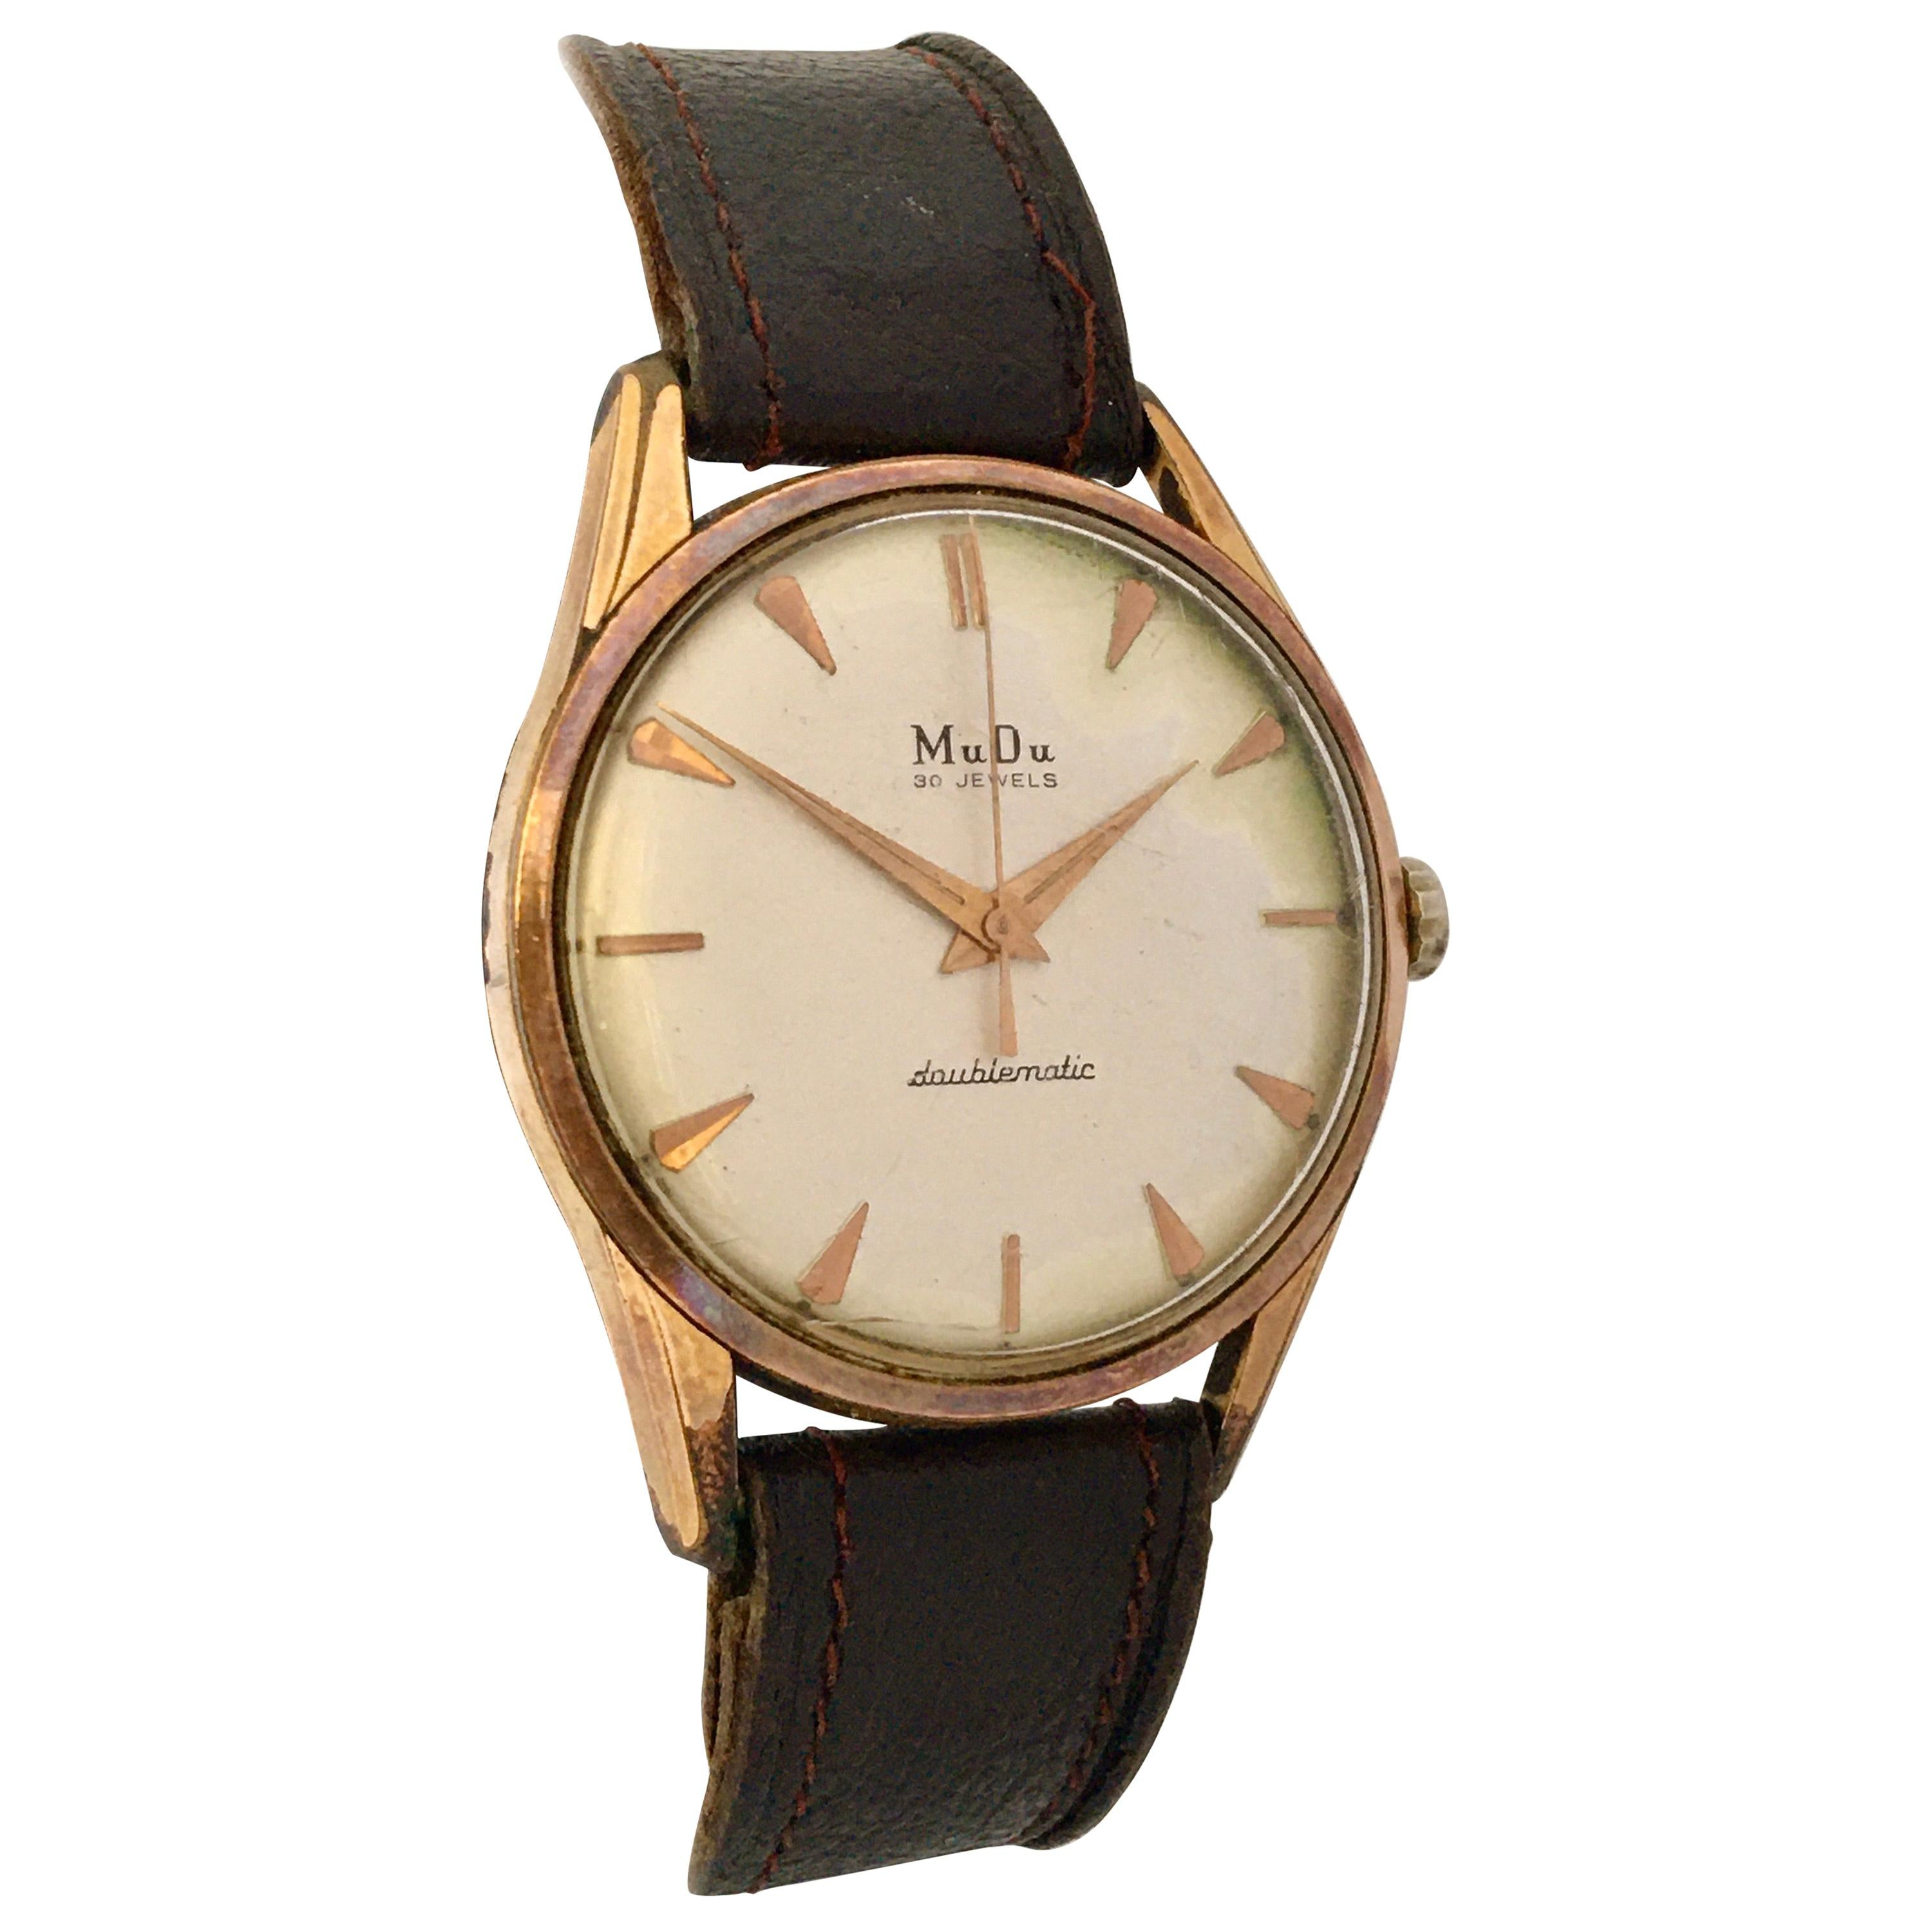 Vintage 1960s Gold-Plated Cap and Stainless Steel Back Swiss Automatic Watch